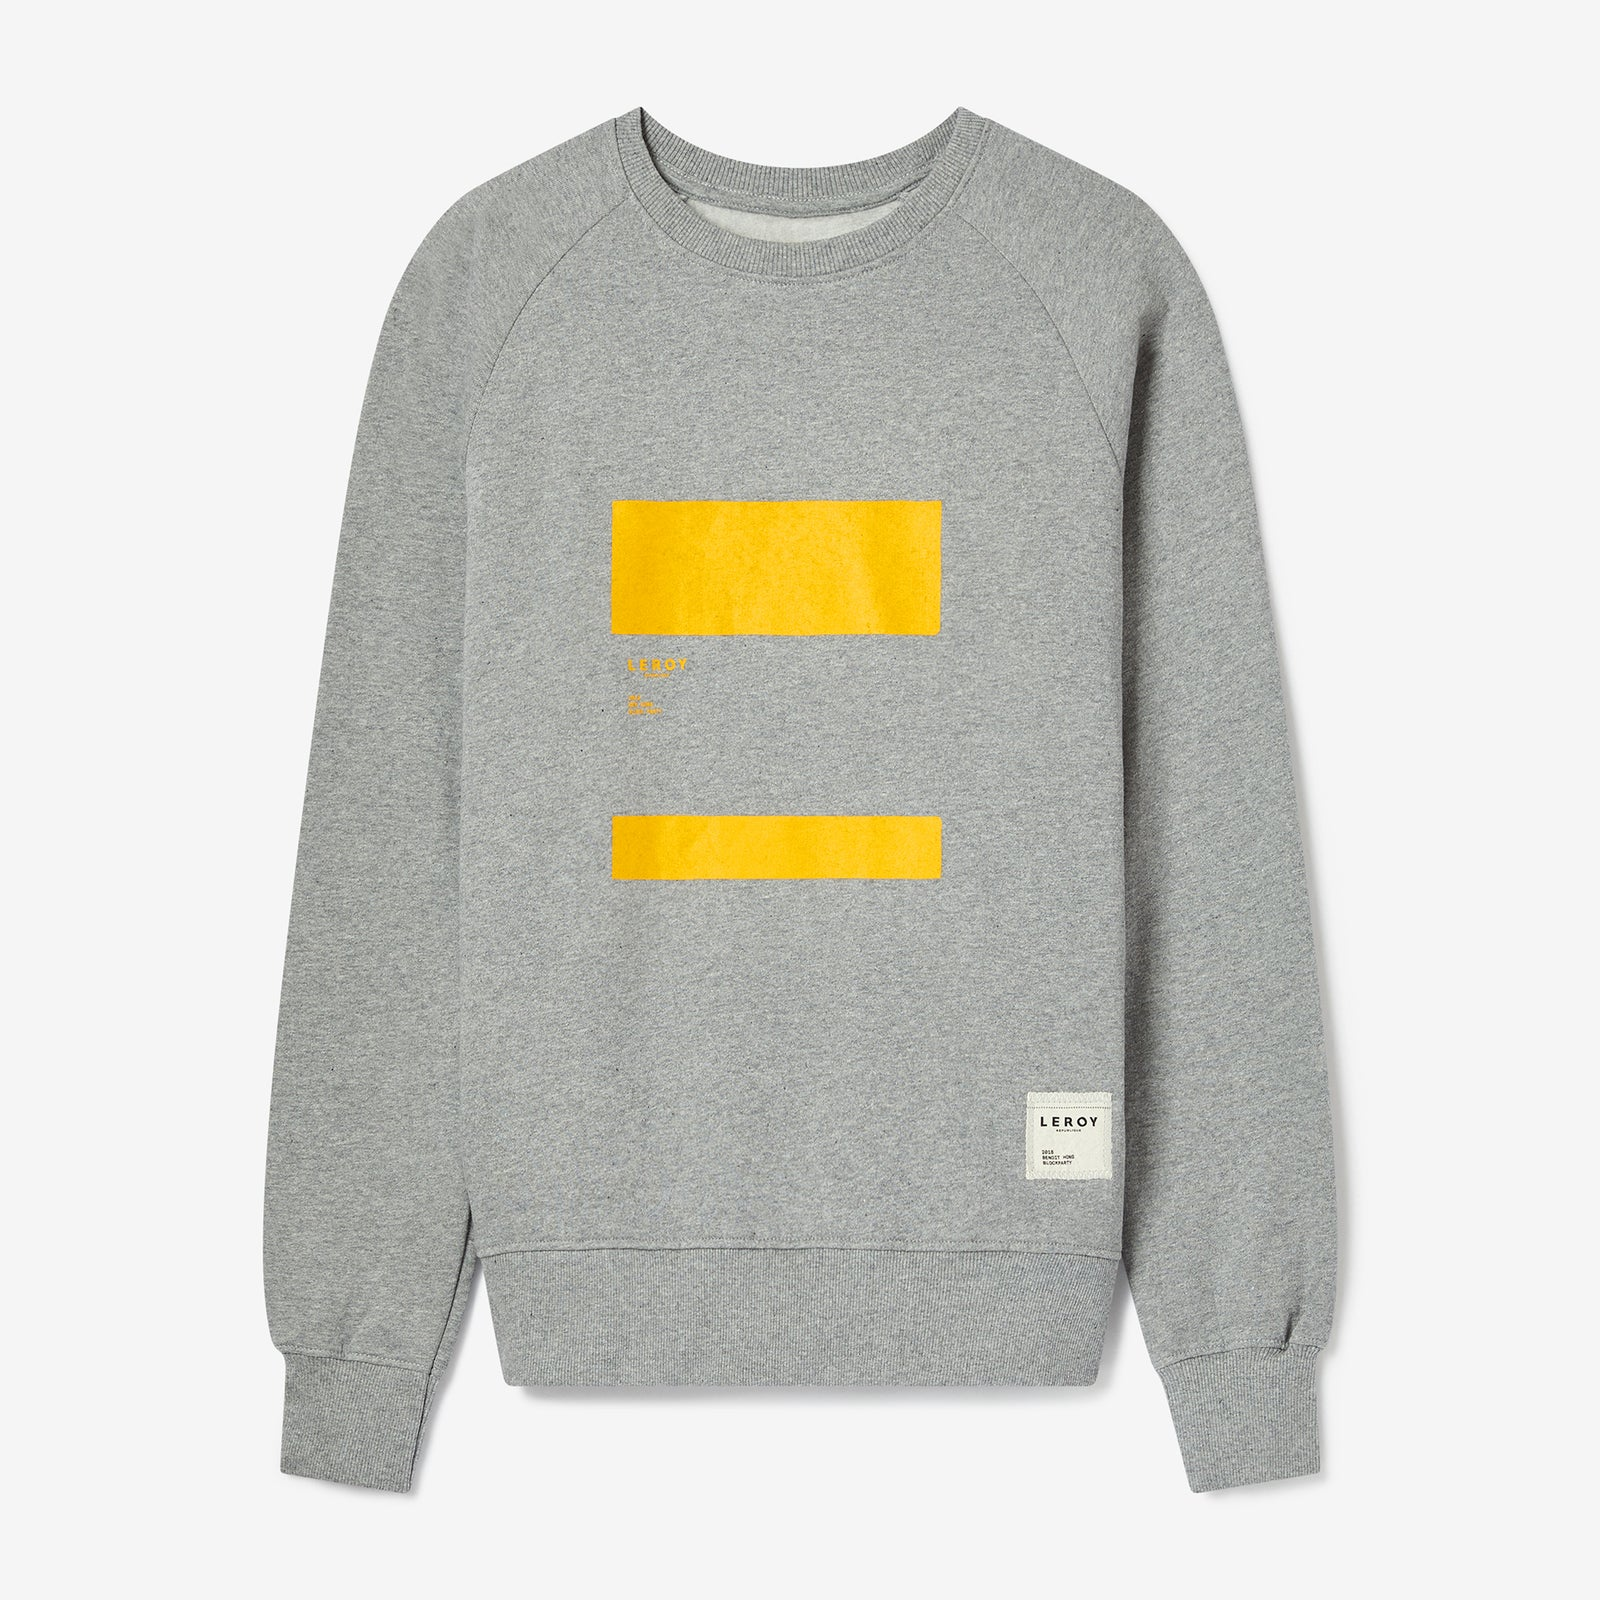 Ledge warm yellow crew neck